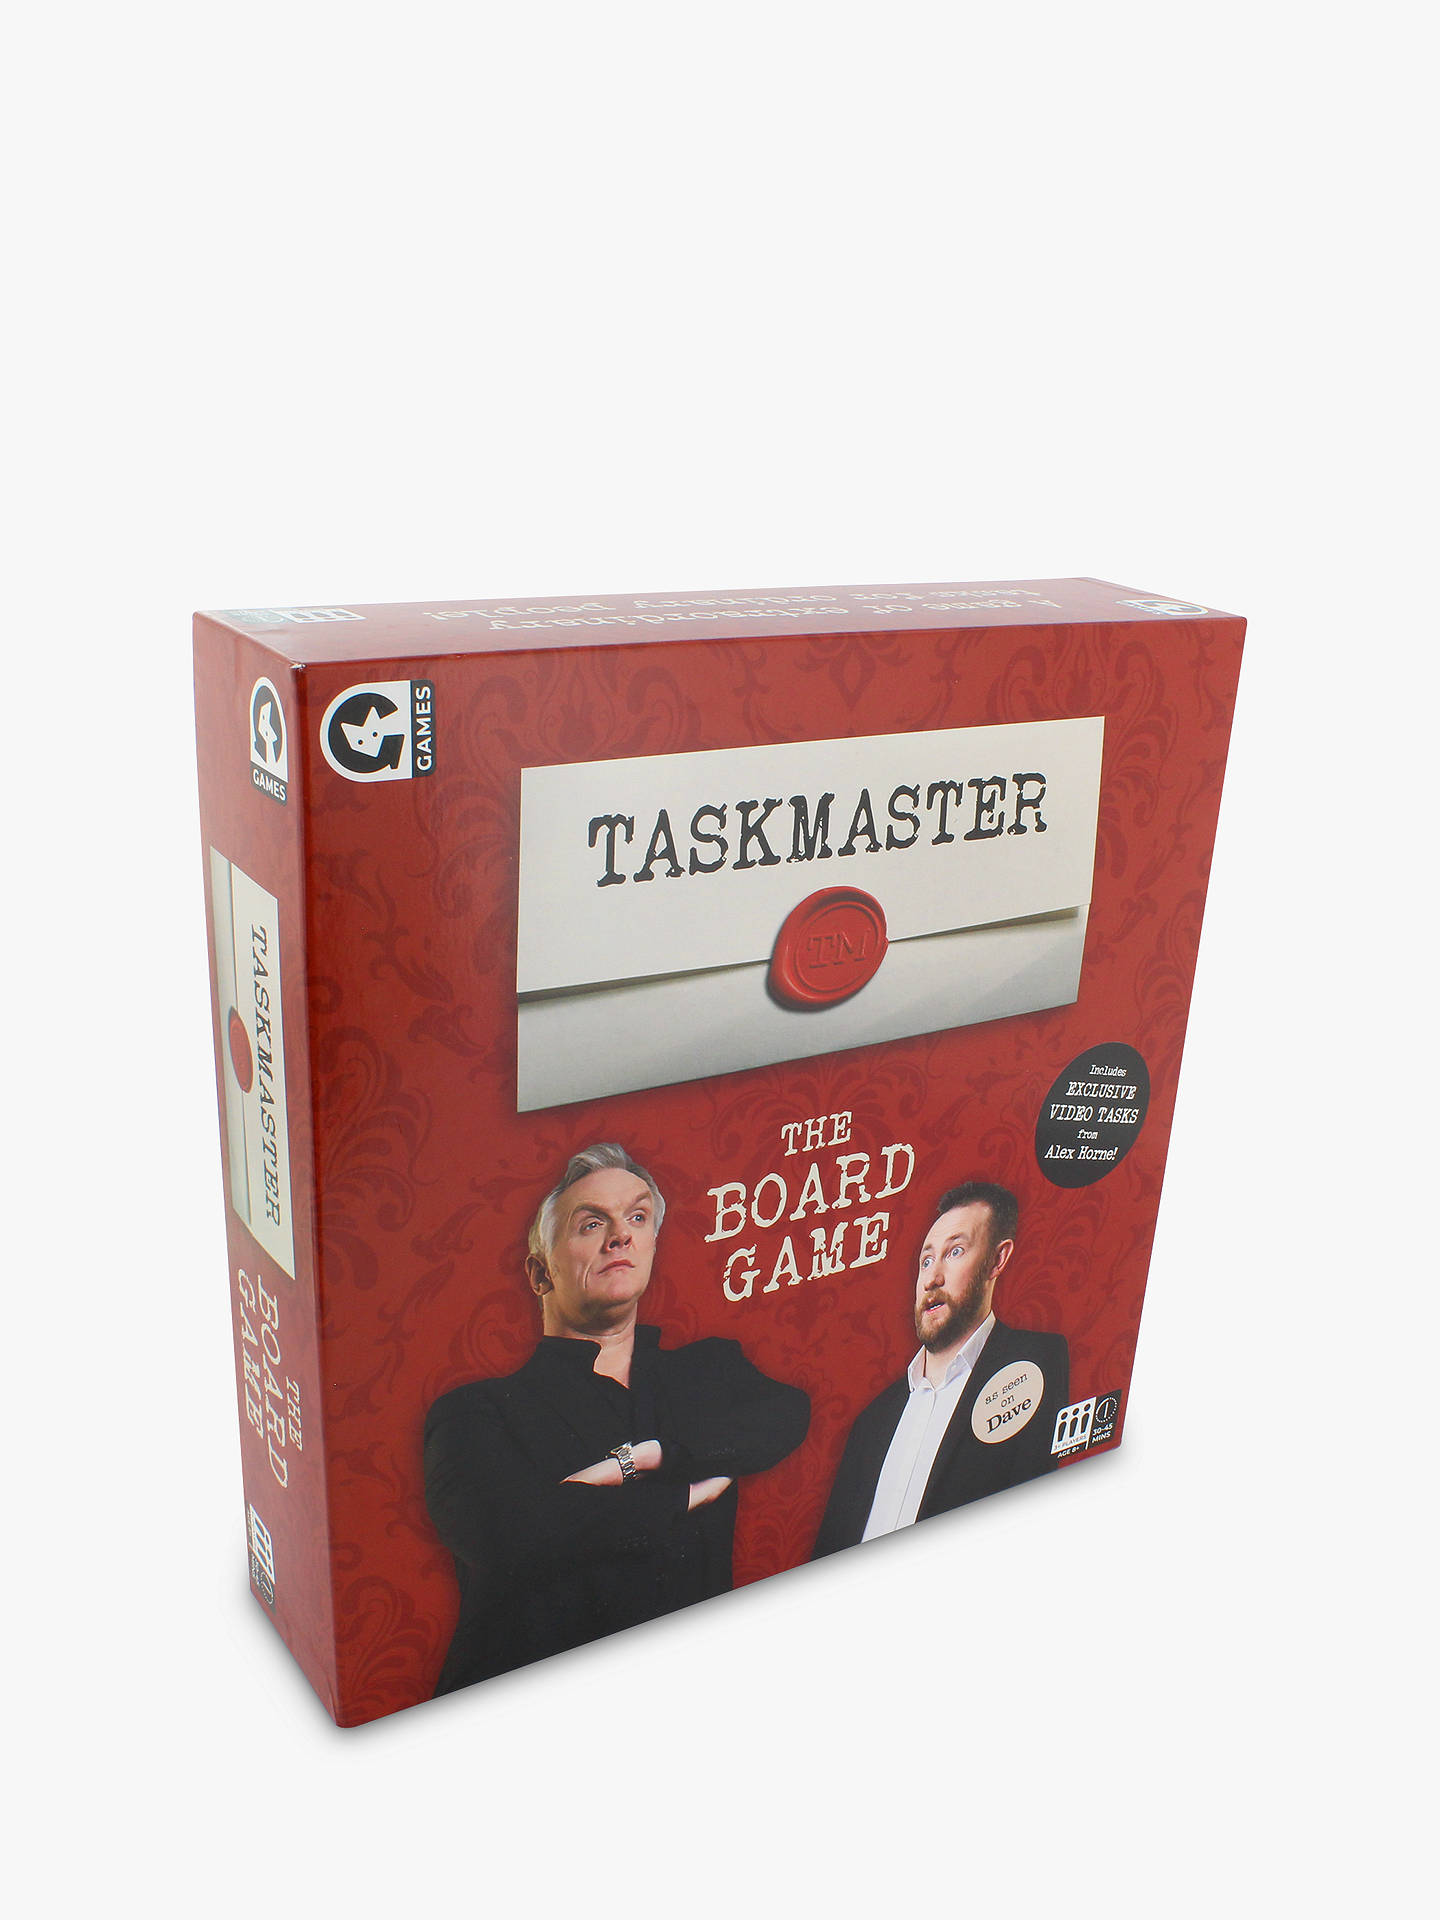 Taskmaster the Board Game Review